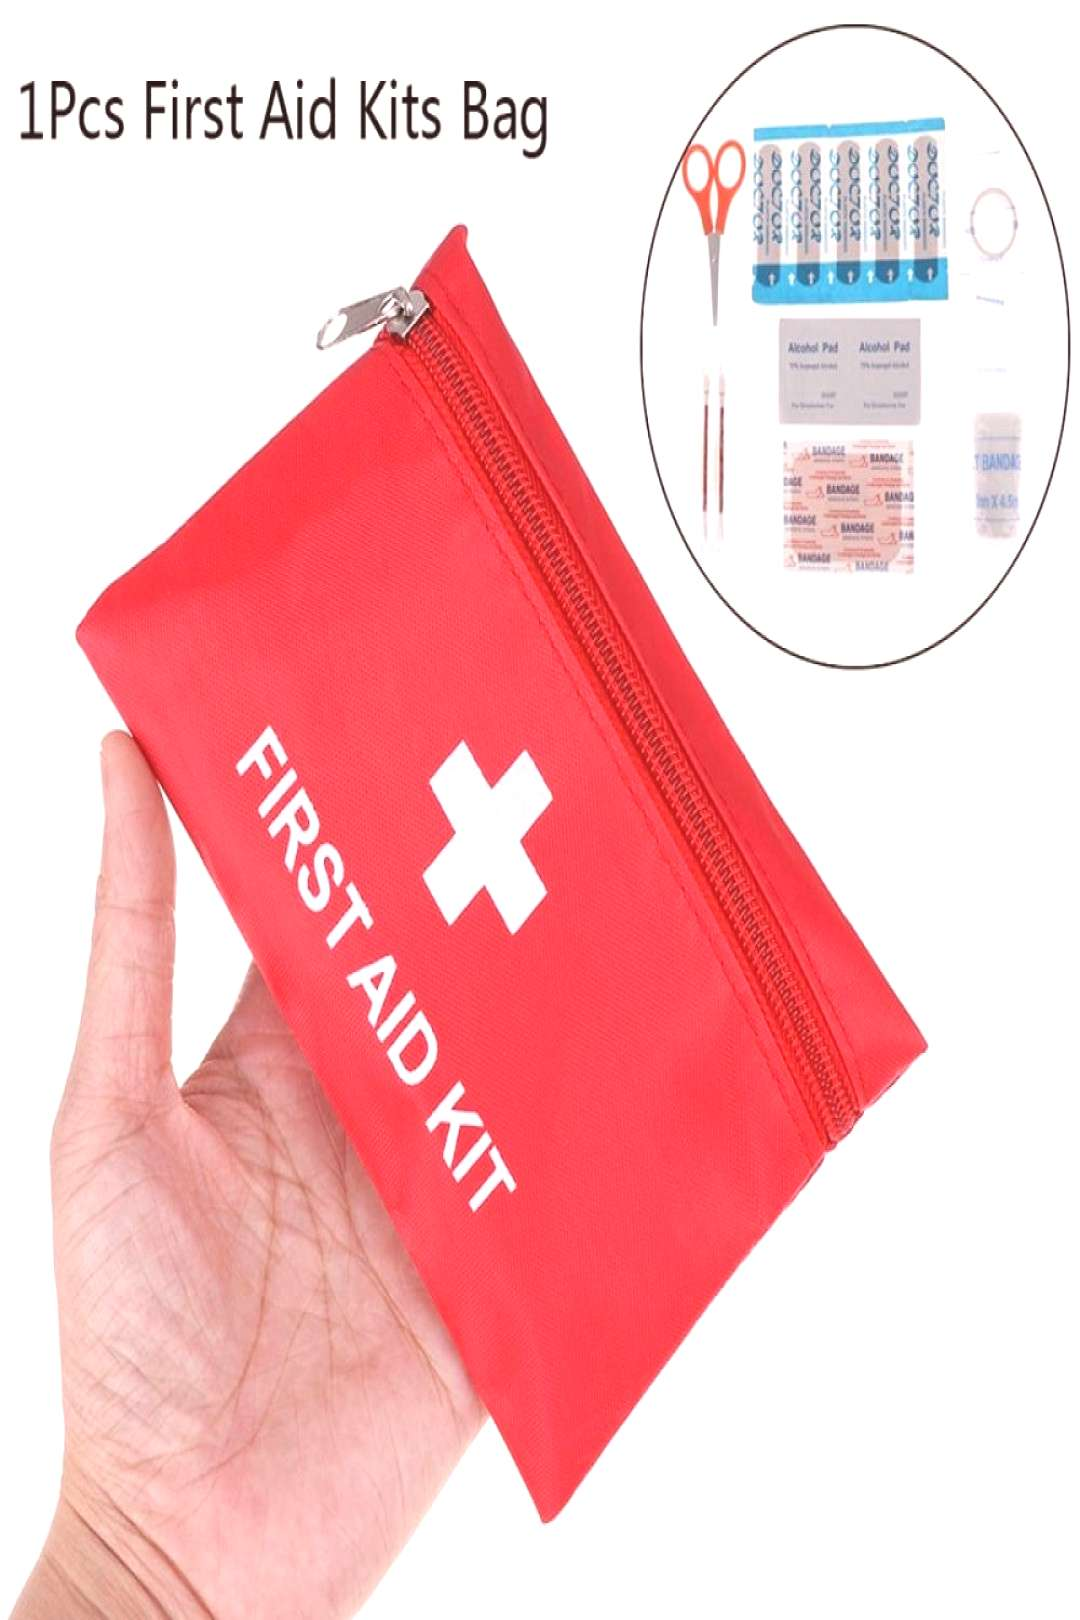 1X Portable Emergency Survival First Aid Kit Pack Travel Medical Sports Bag Case Price: $7.95   {#b